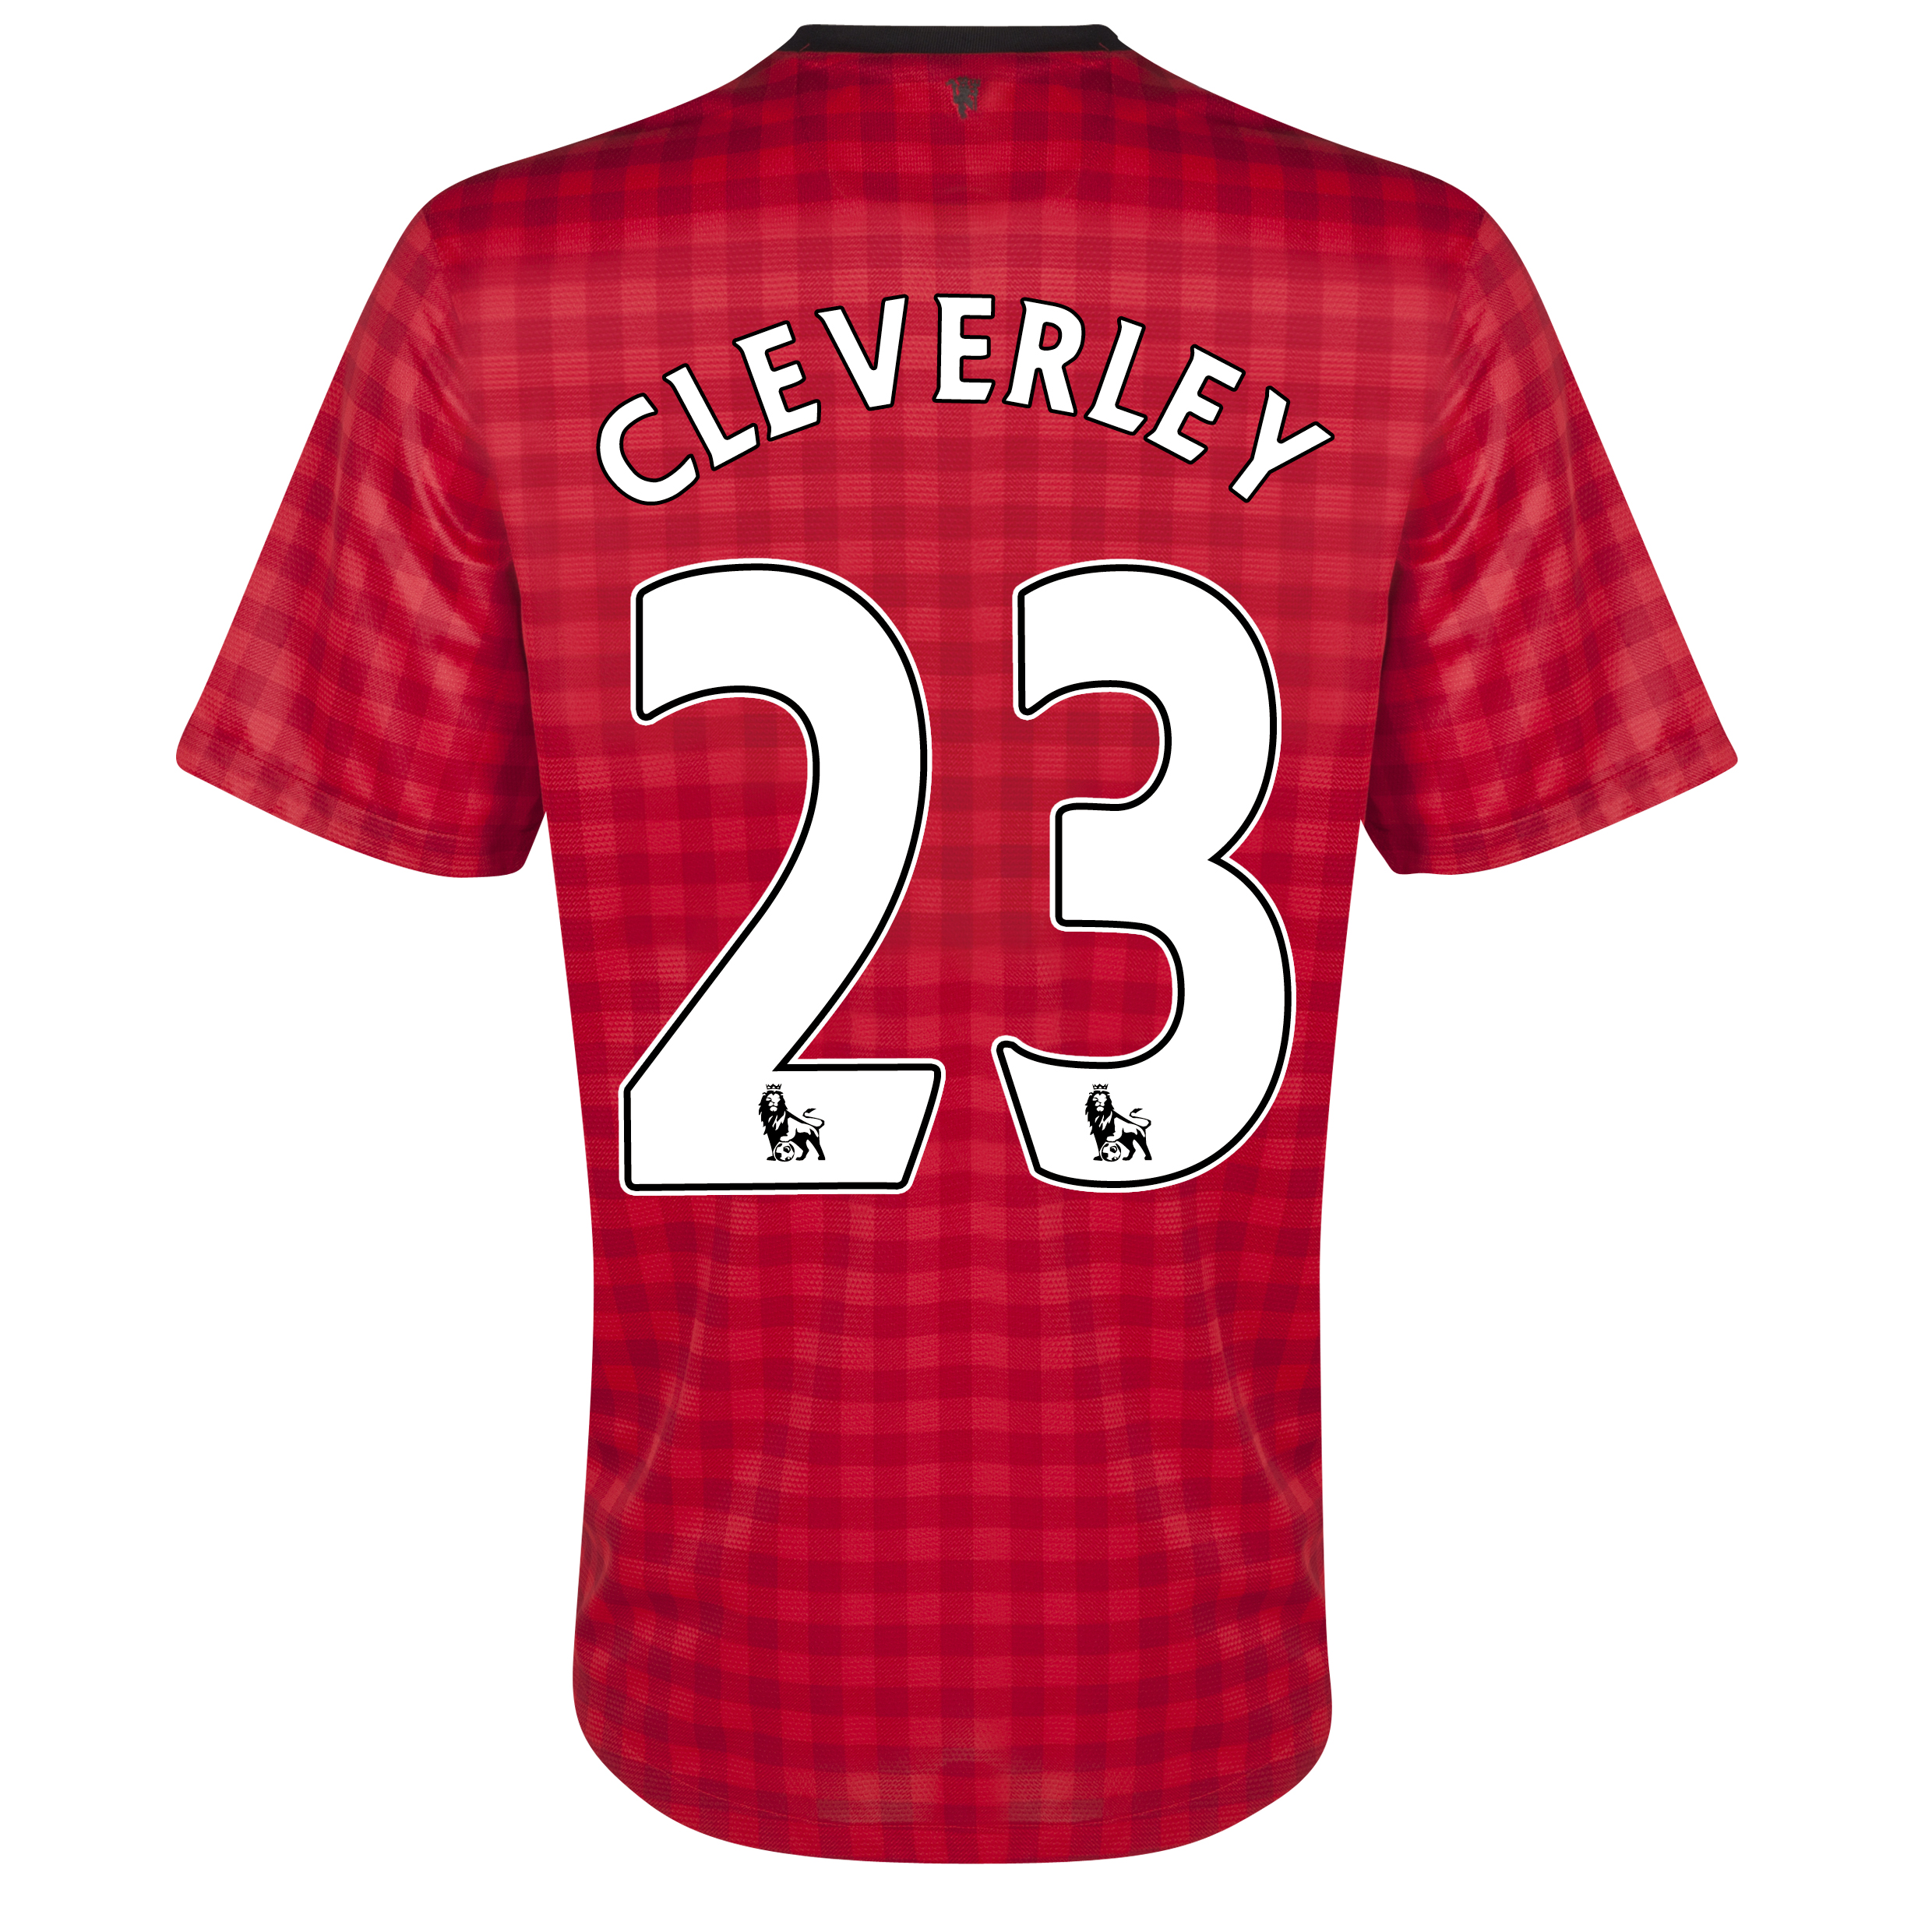 Manchester United Home Shirt 2012/13  - Youths with Cleverley 23 printing